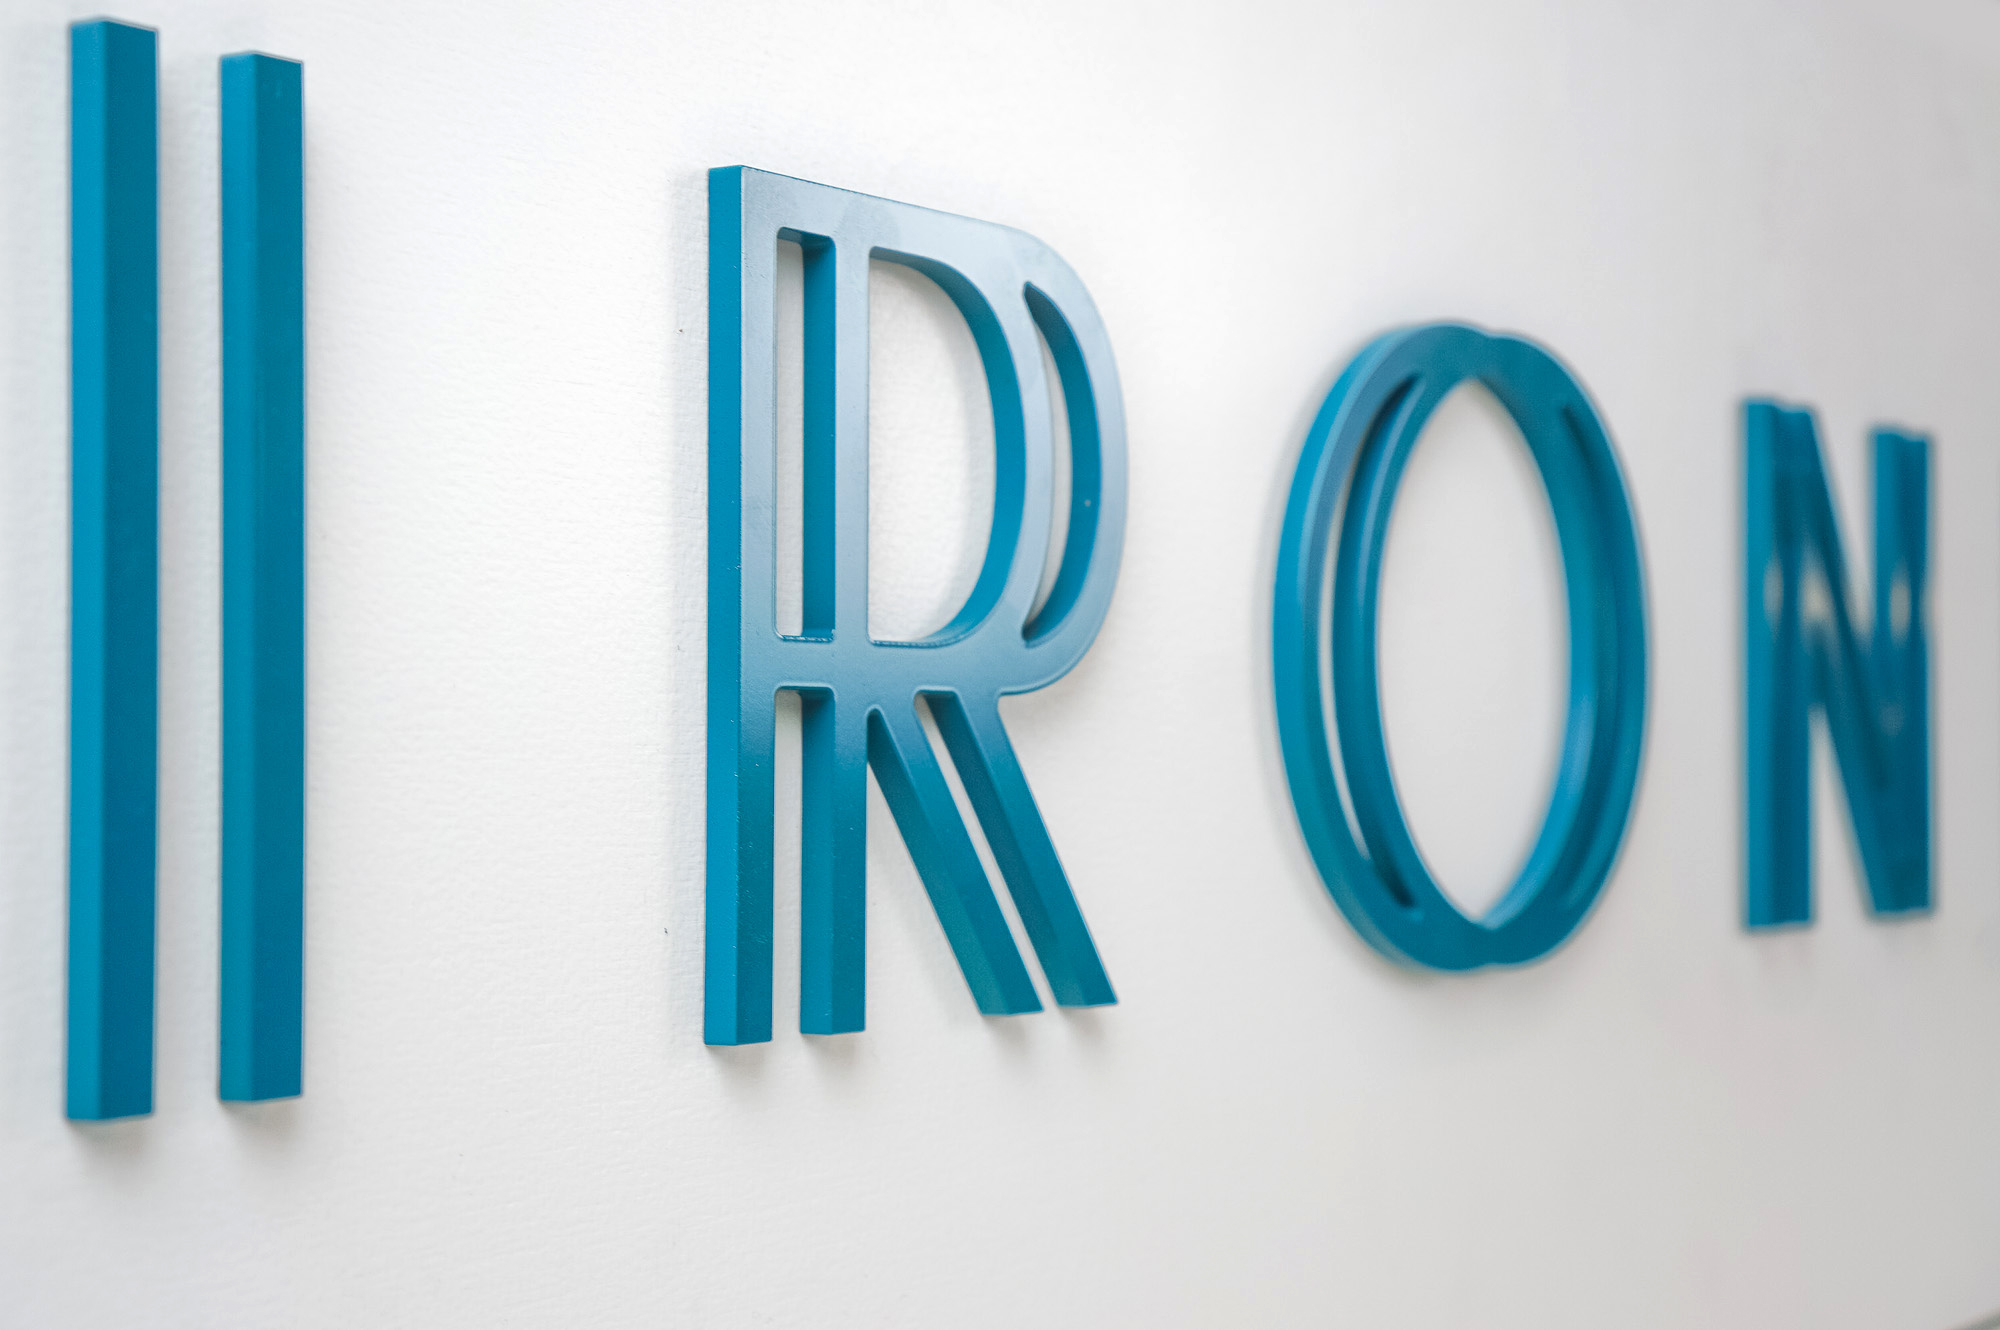 Blue letters on white rectangular panel for 10 Branch, an organization that mentors early stage companies.